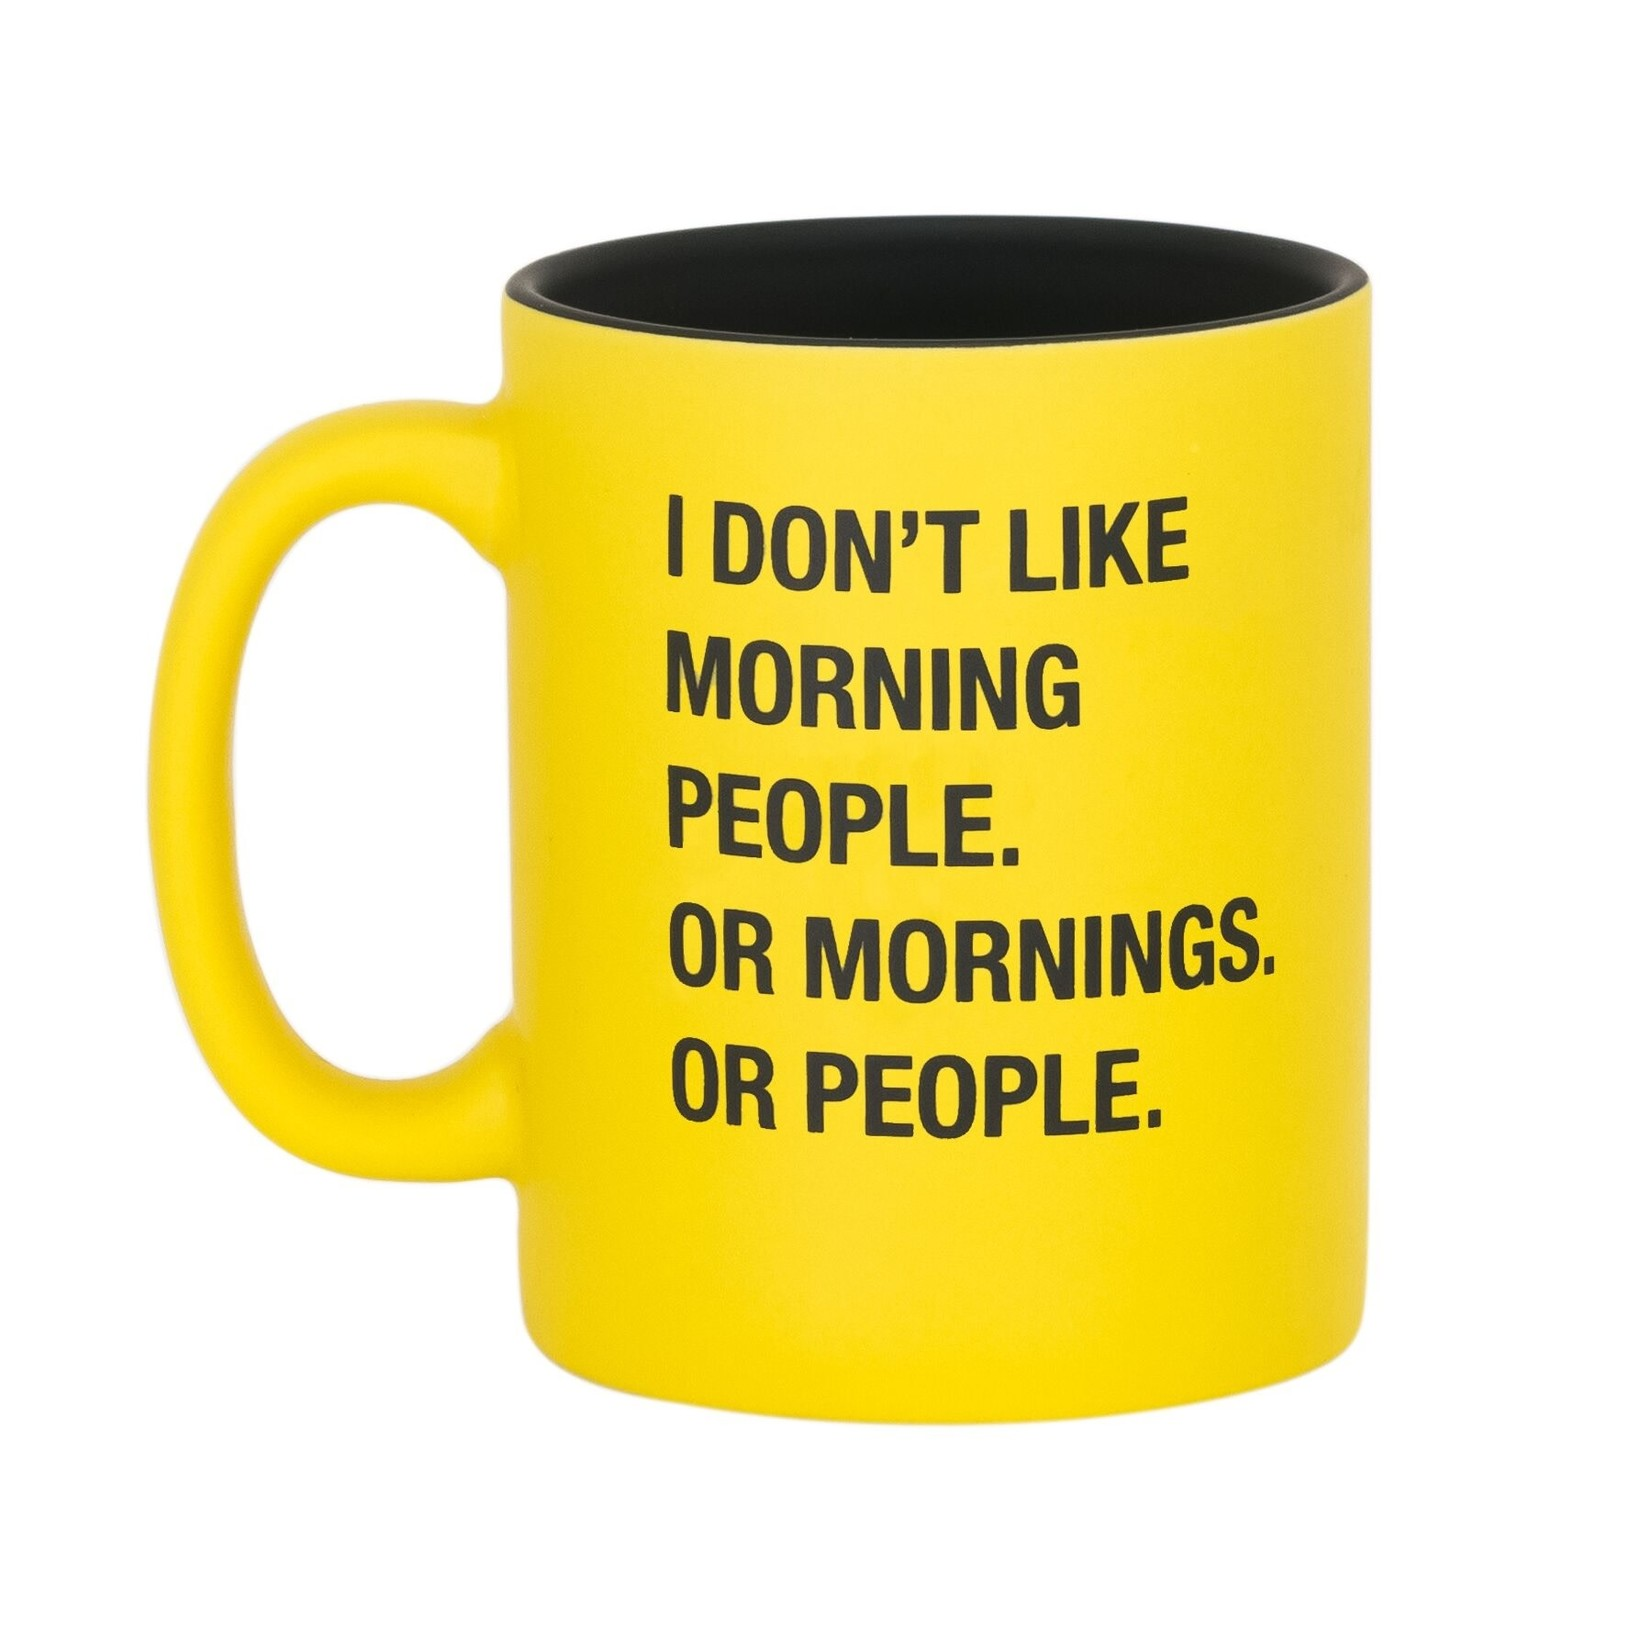 About Face Designs Inc About Face Designs 13.5oz Mug Morning People